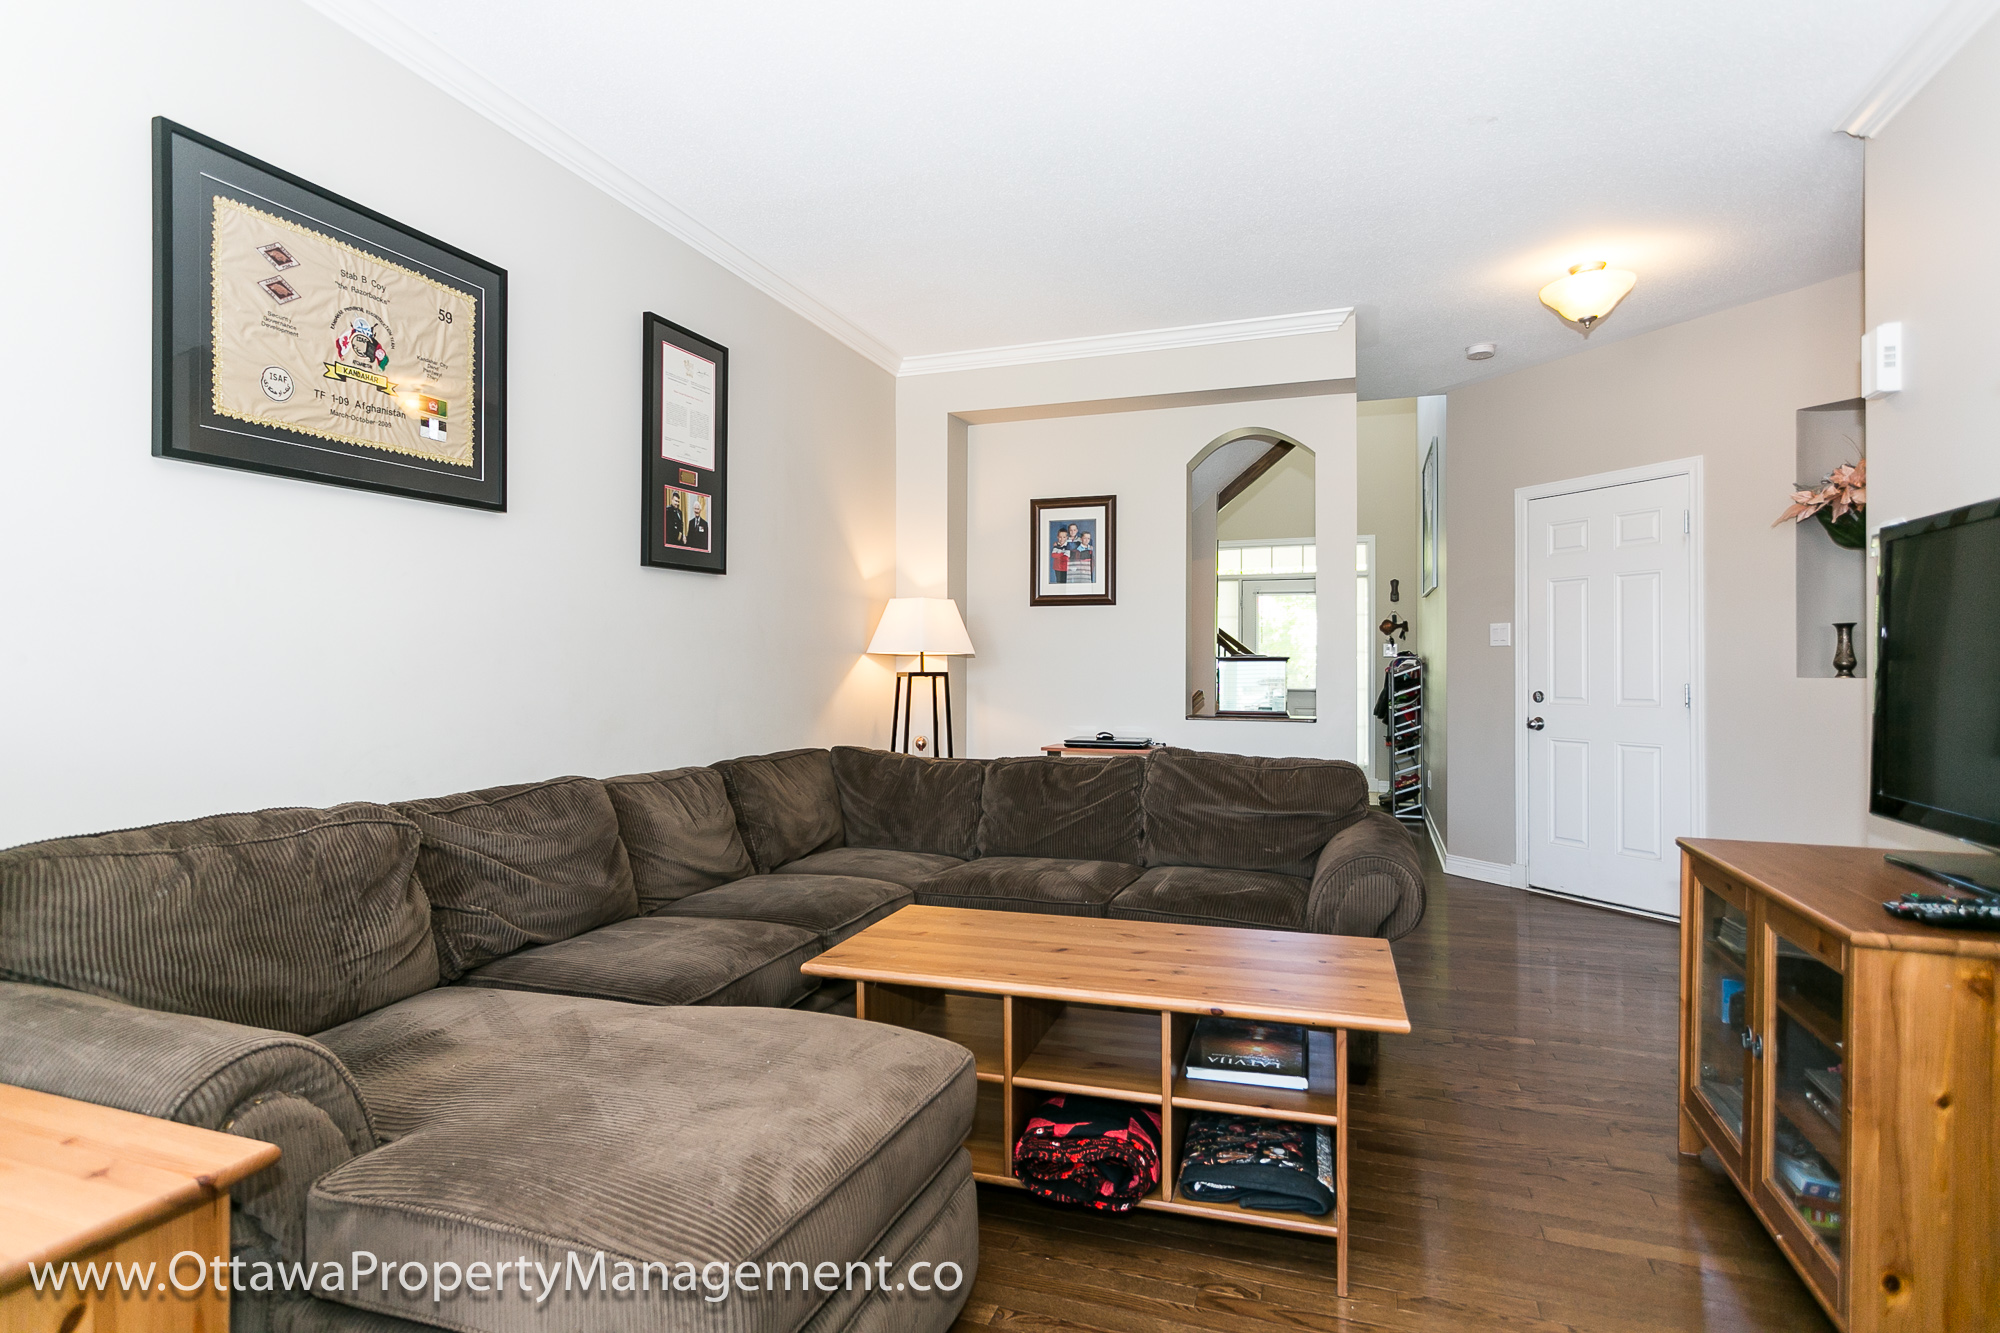 189 Trail Side, Orleans,For Rent   Ottawa Property Management